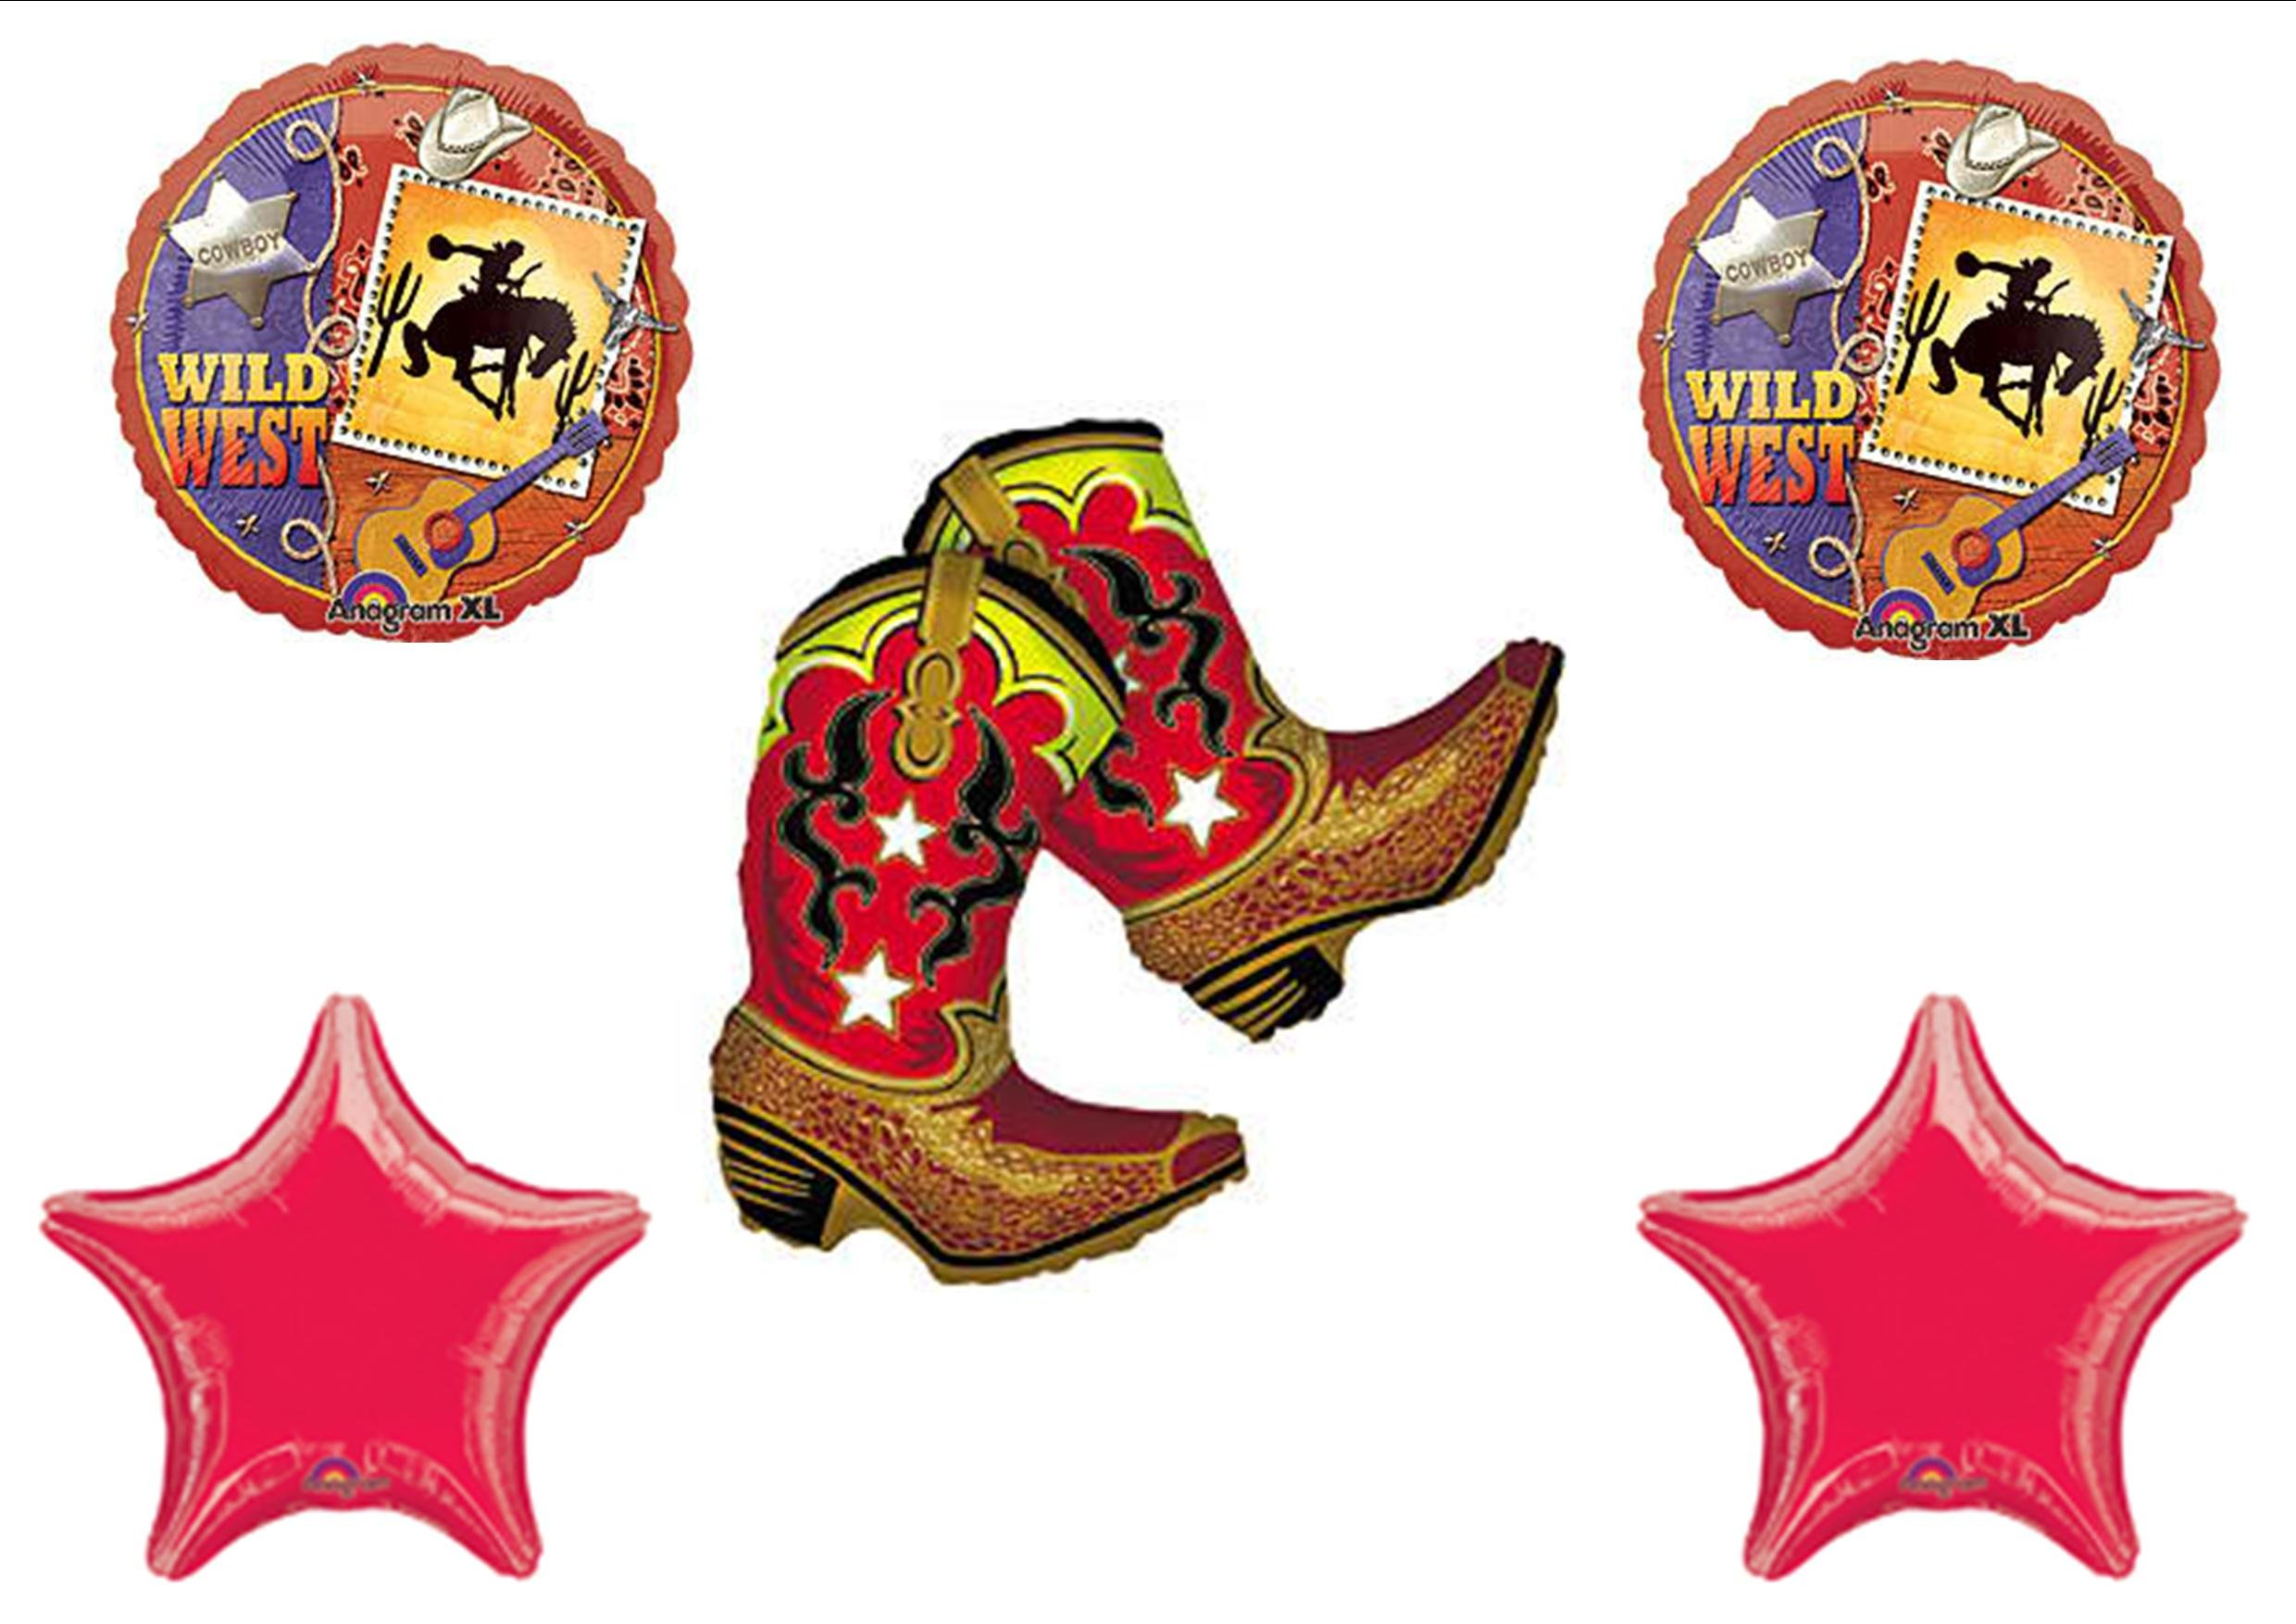 WILD WEST Rodeo Cowboy Horse BIRTHDAY PARTY Balloons Decorations Supplies